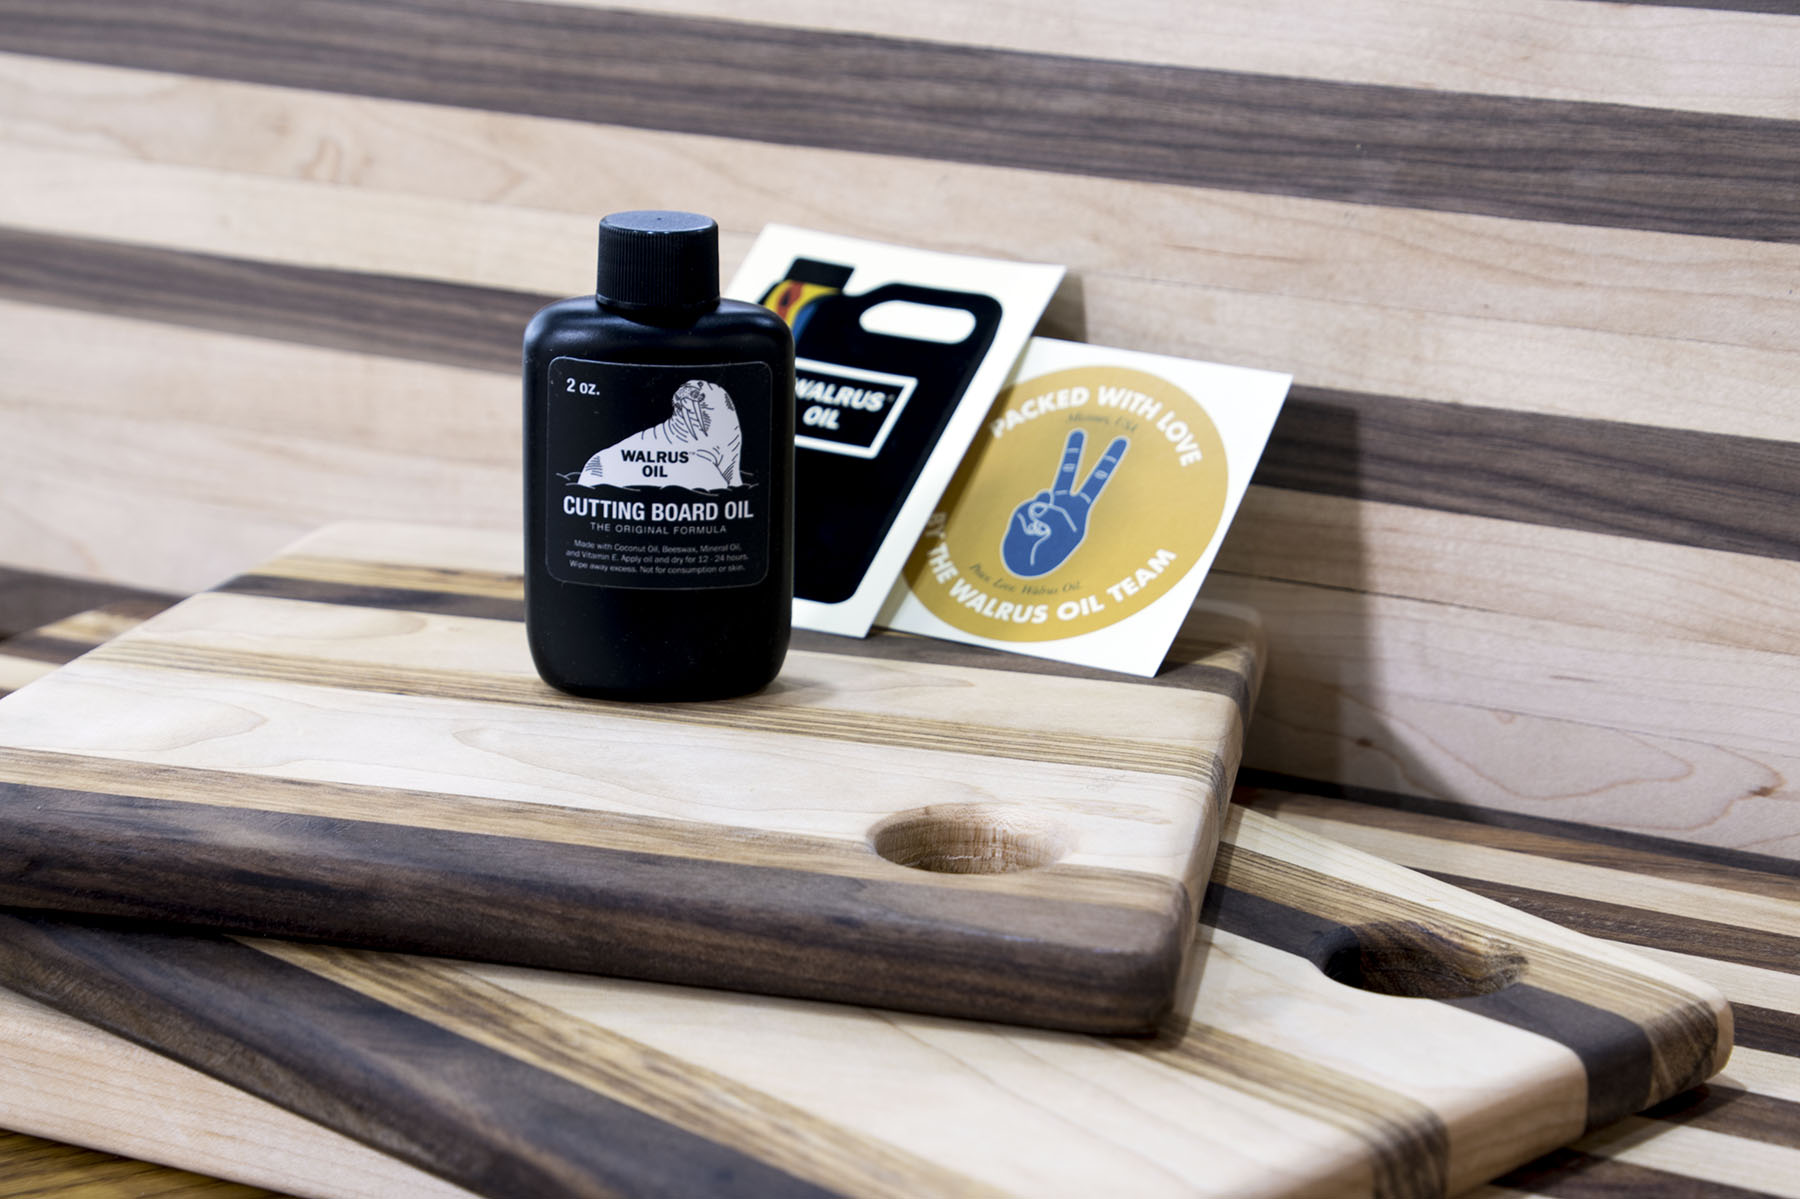 Cutting Board Oil Walrus Oil 2 Oz Wood Care Brand From Usa